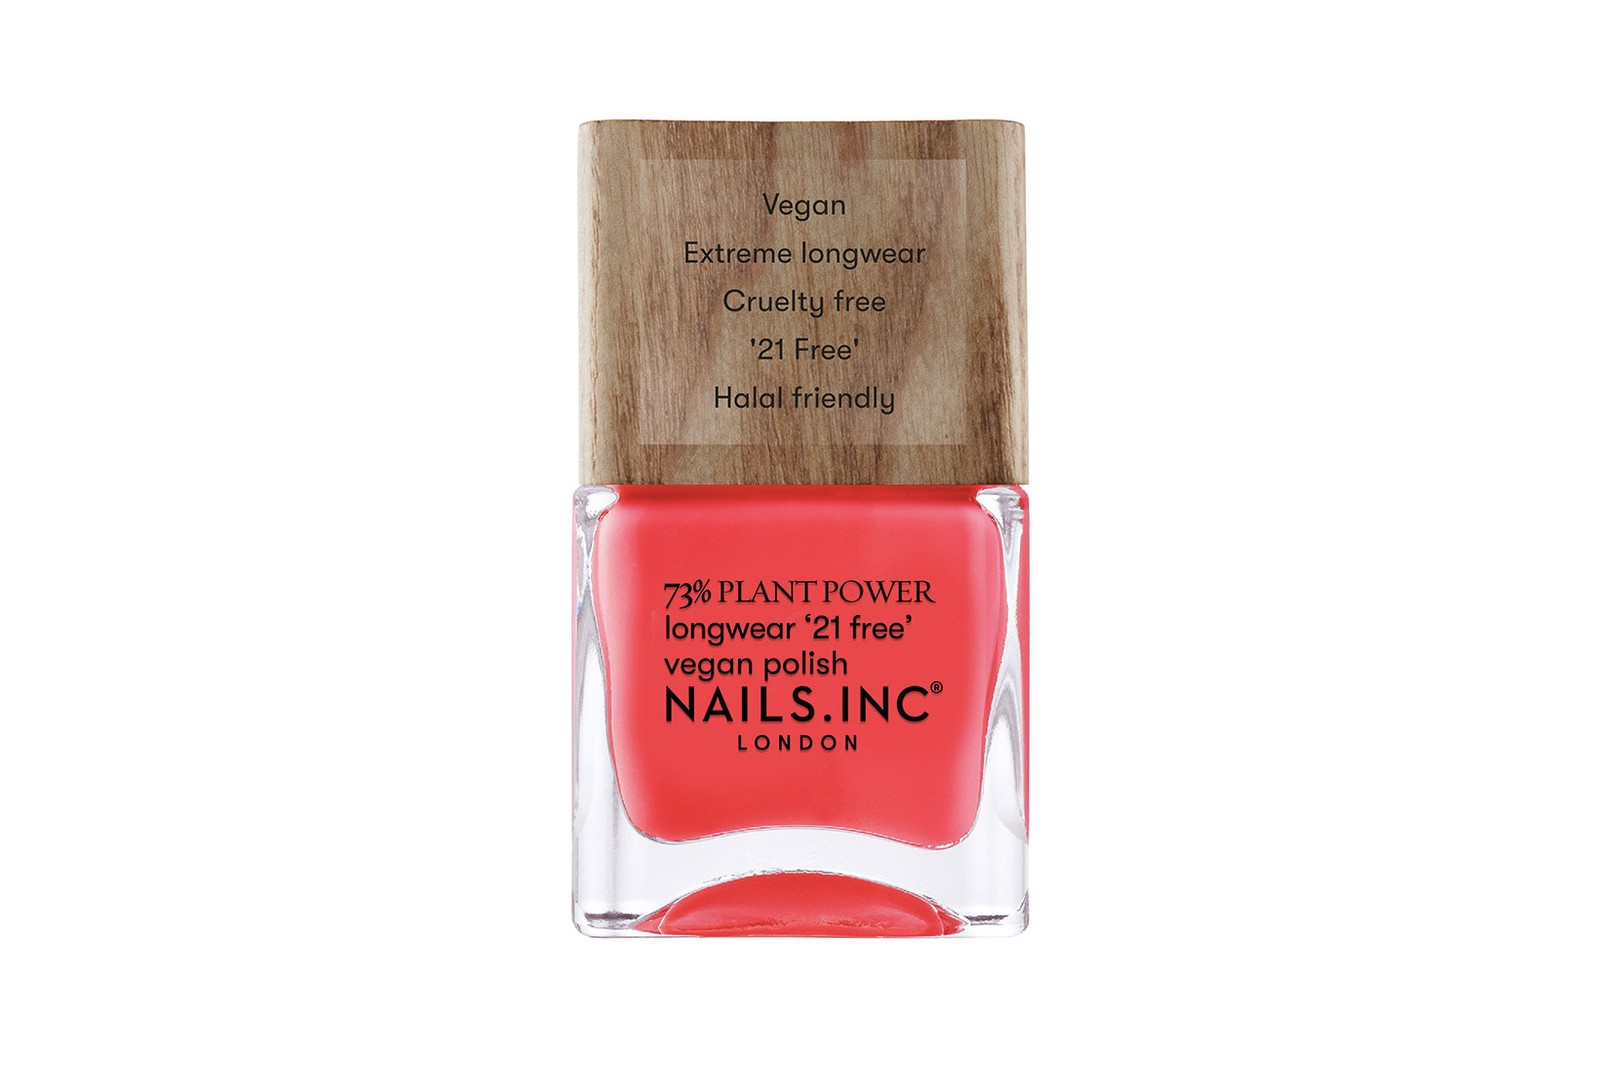 best spring nail polish colors pretty shades manicure beauty cosmetics gelcare y2k extraaa Tiffany Lai Montreal Canada influencer